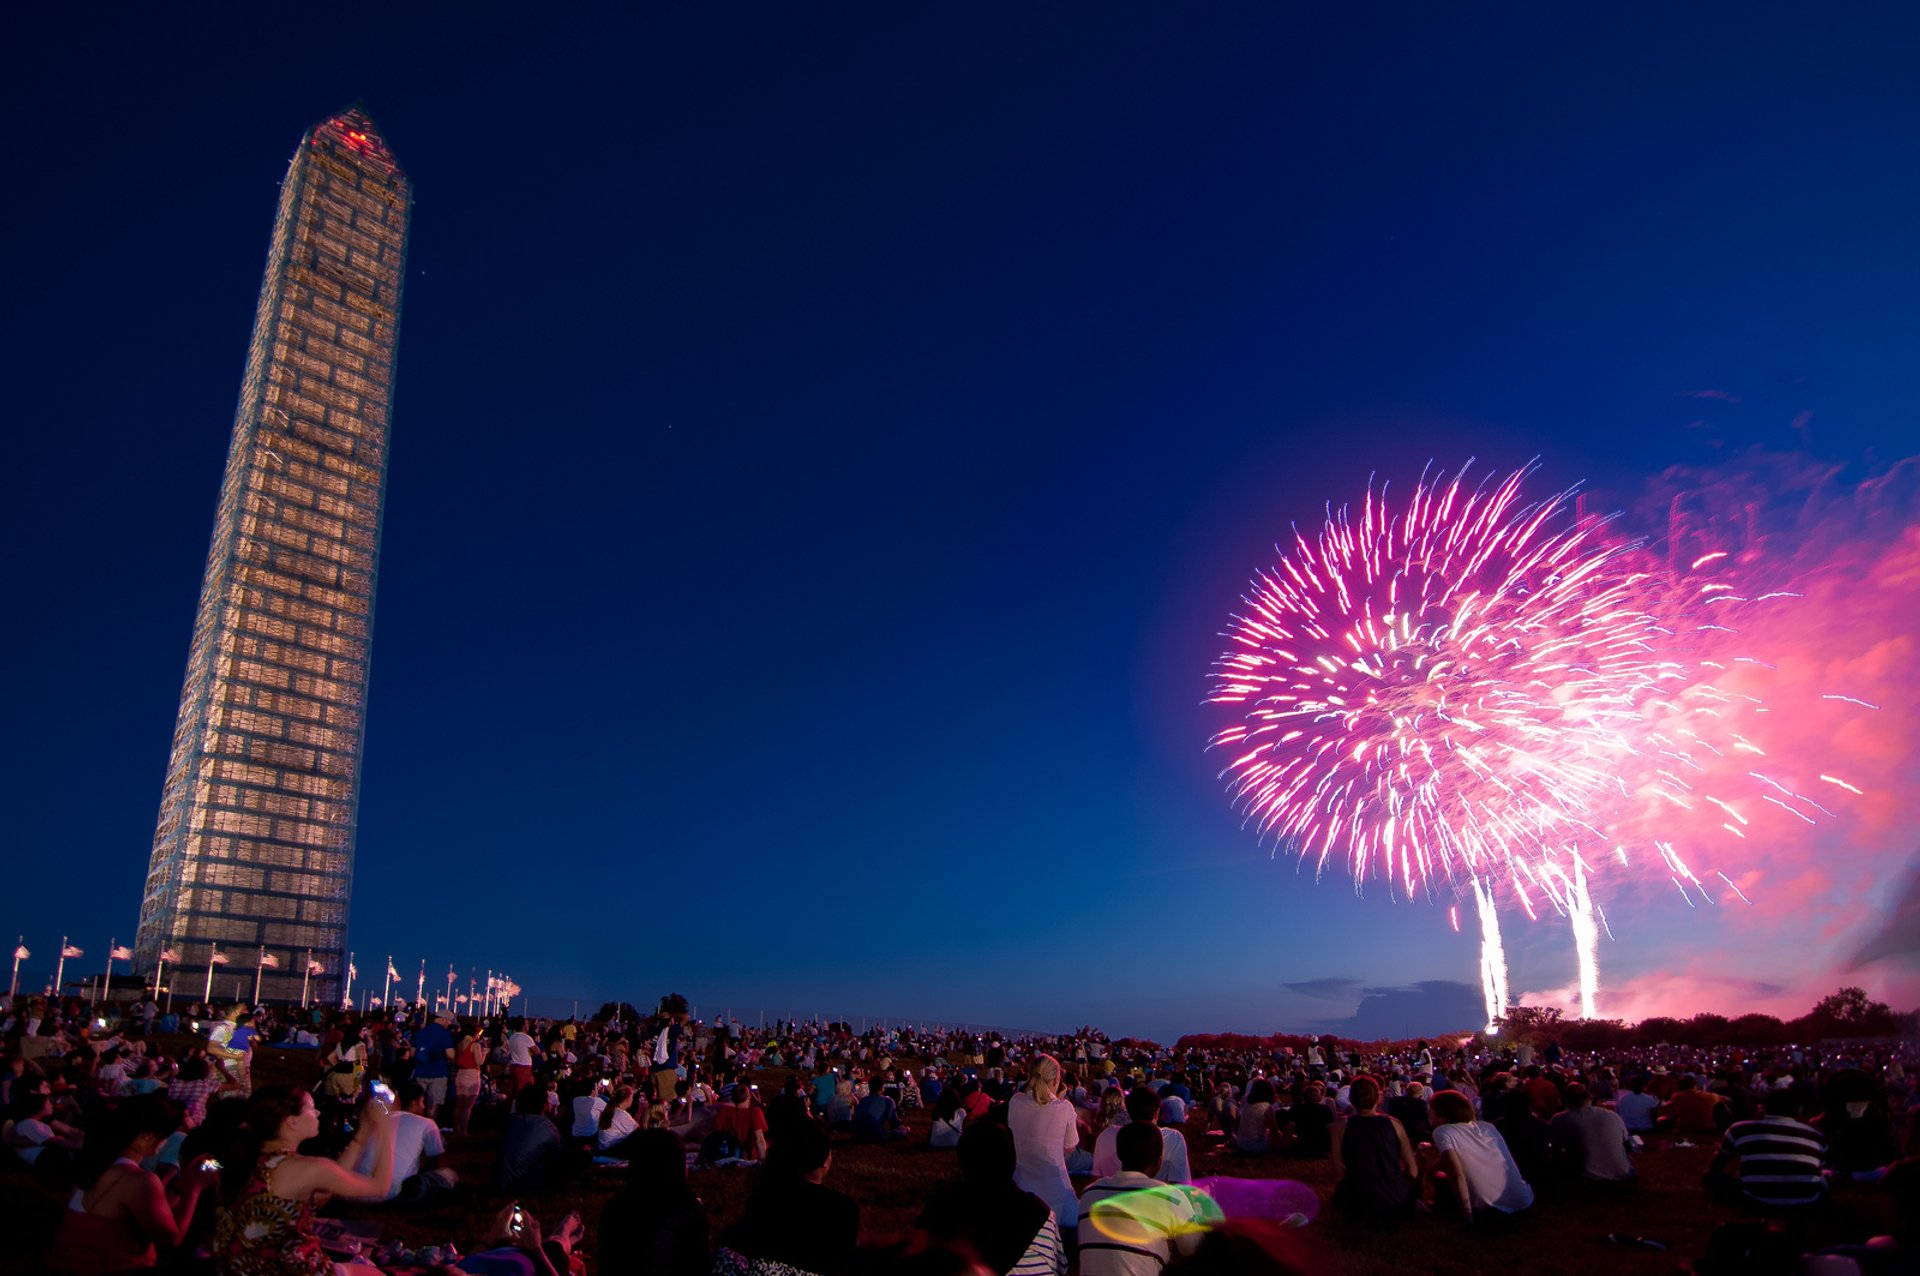 4th of July Concert, Parade & Fireworks in Washington, D.C. 2020 - Best Time